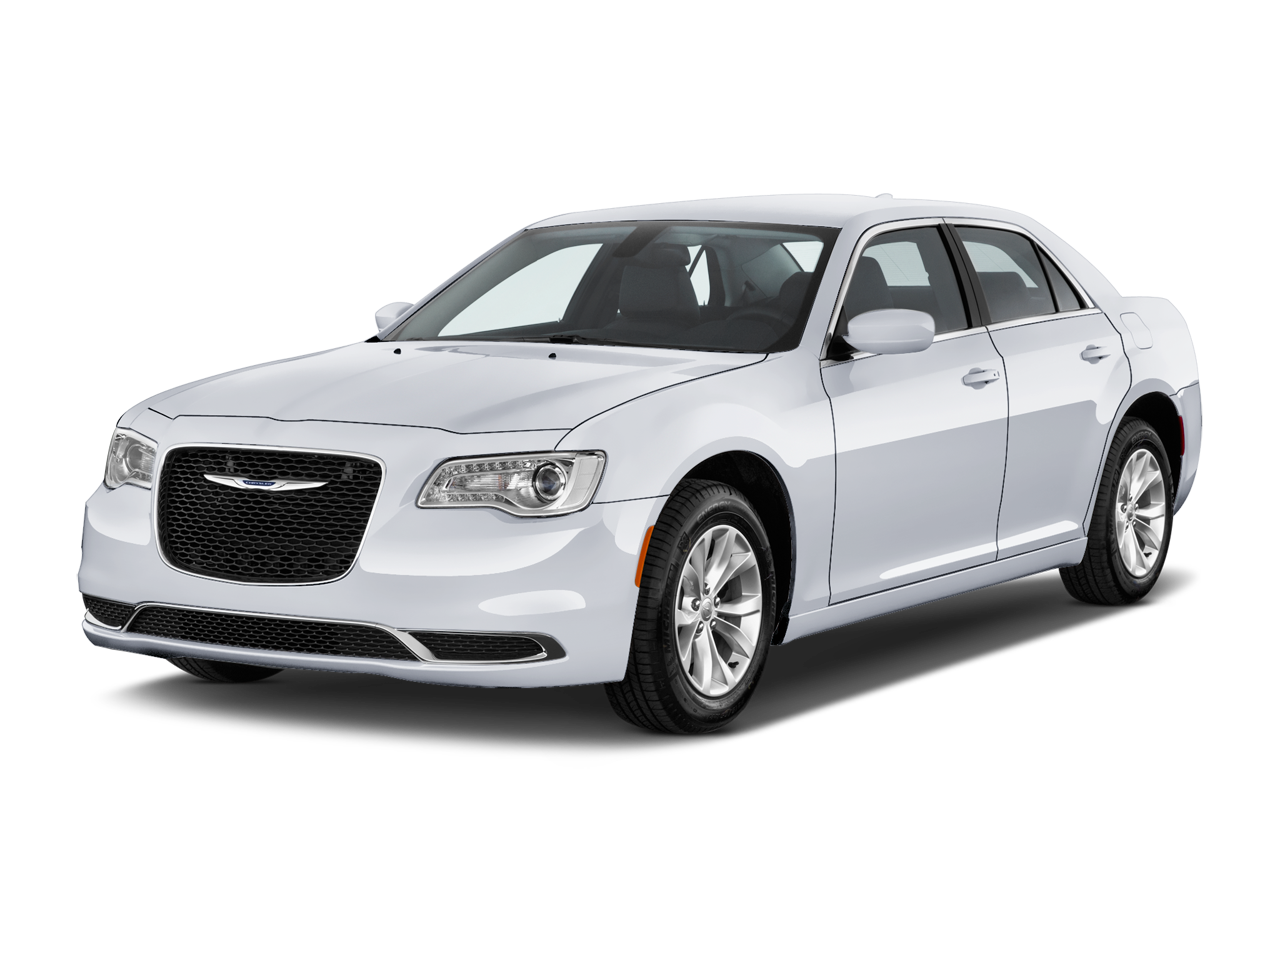 new 2017 chrysler 300 s near lansing mi family deal. Black Bedroom Furniture Sets. Home Design Ideas